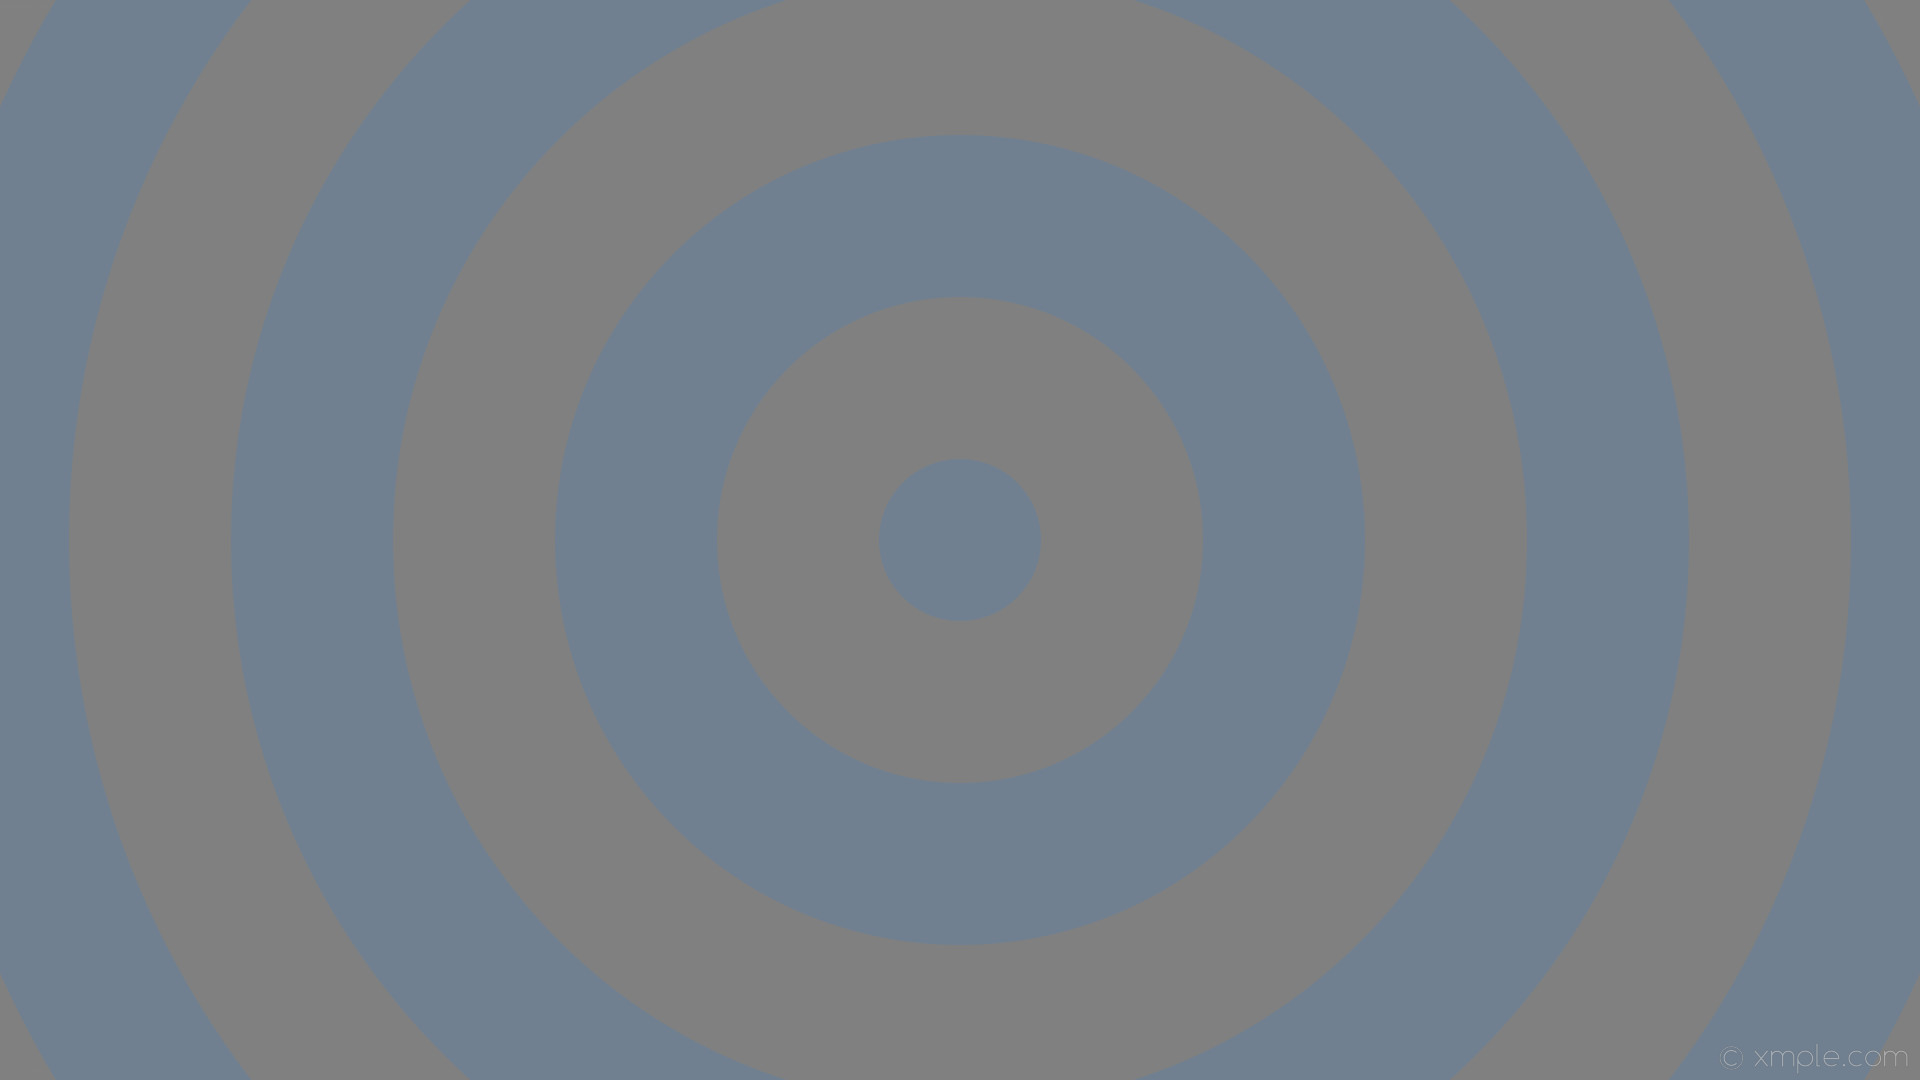 1920x1080 wallpaper rings grey concentric circles gray slate gray #808080 #708090  162px 50% 50